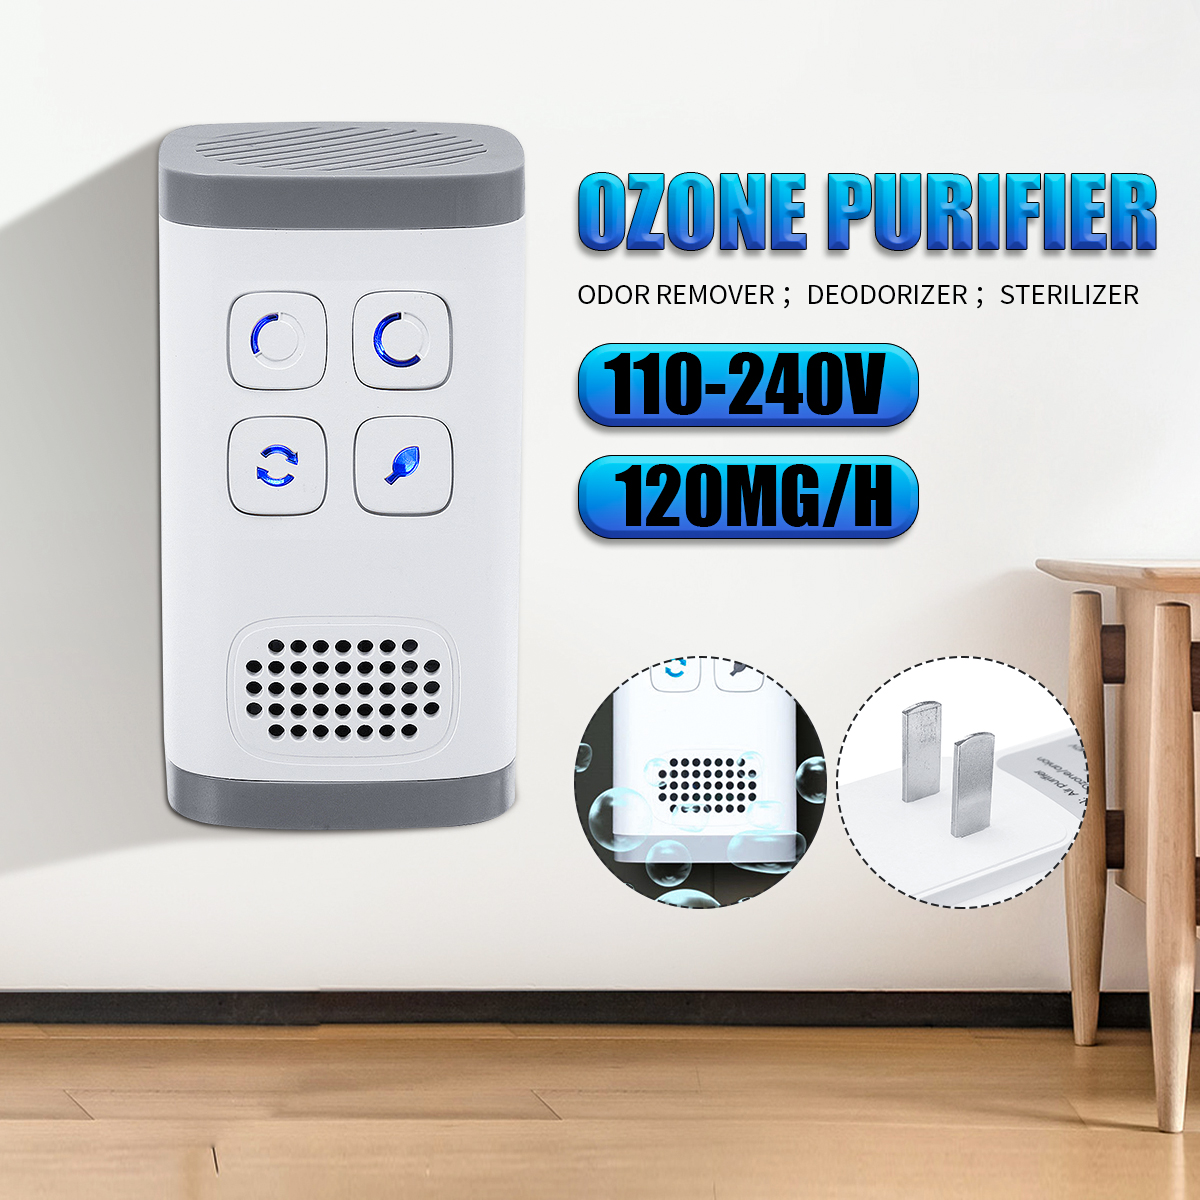 AC110-240v Air-Purifier Ozone Generator Ionizer Generator FILTER Purification  Home Toilet Deodorizer Pet Deodorizer Air Ionizer